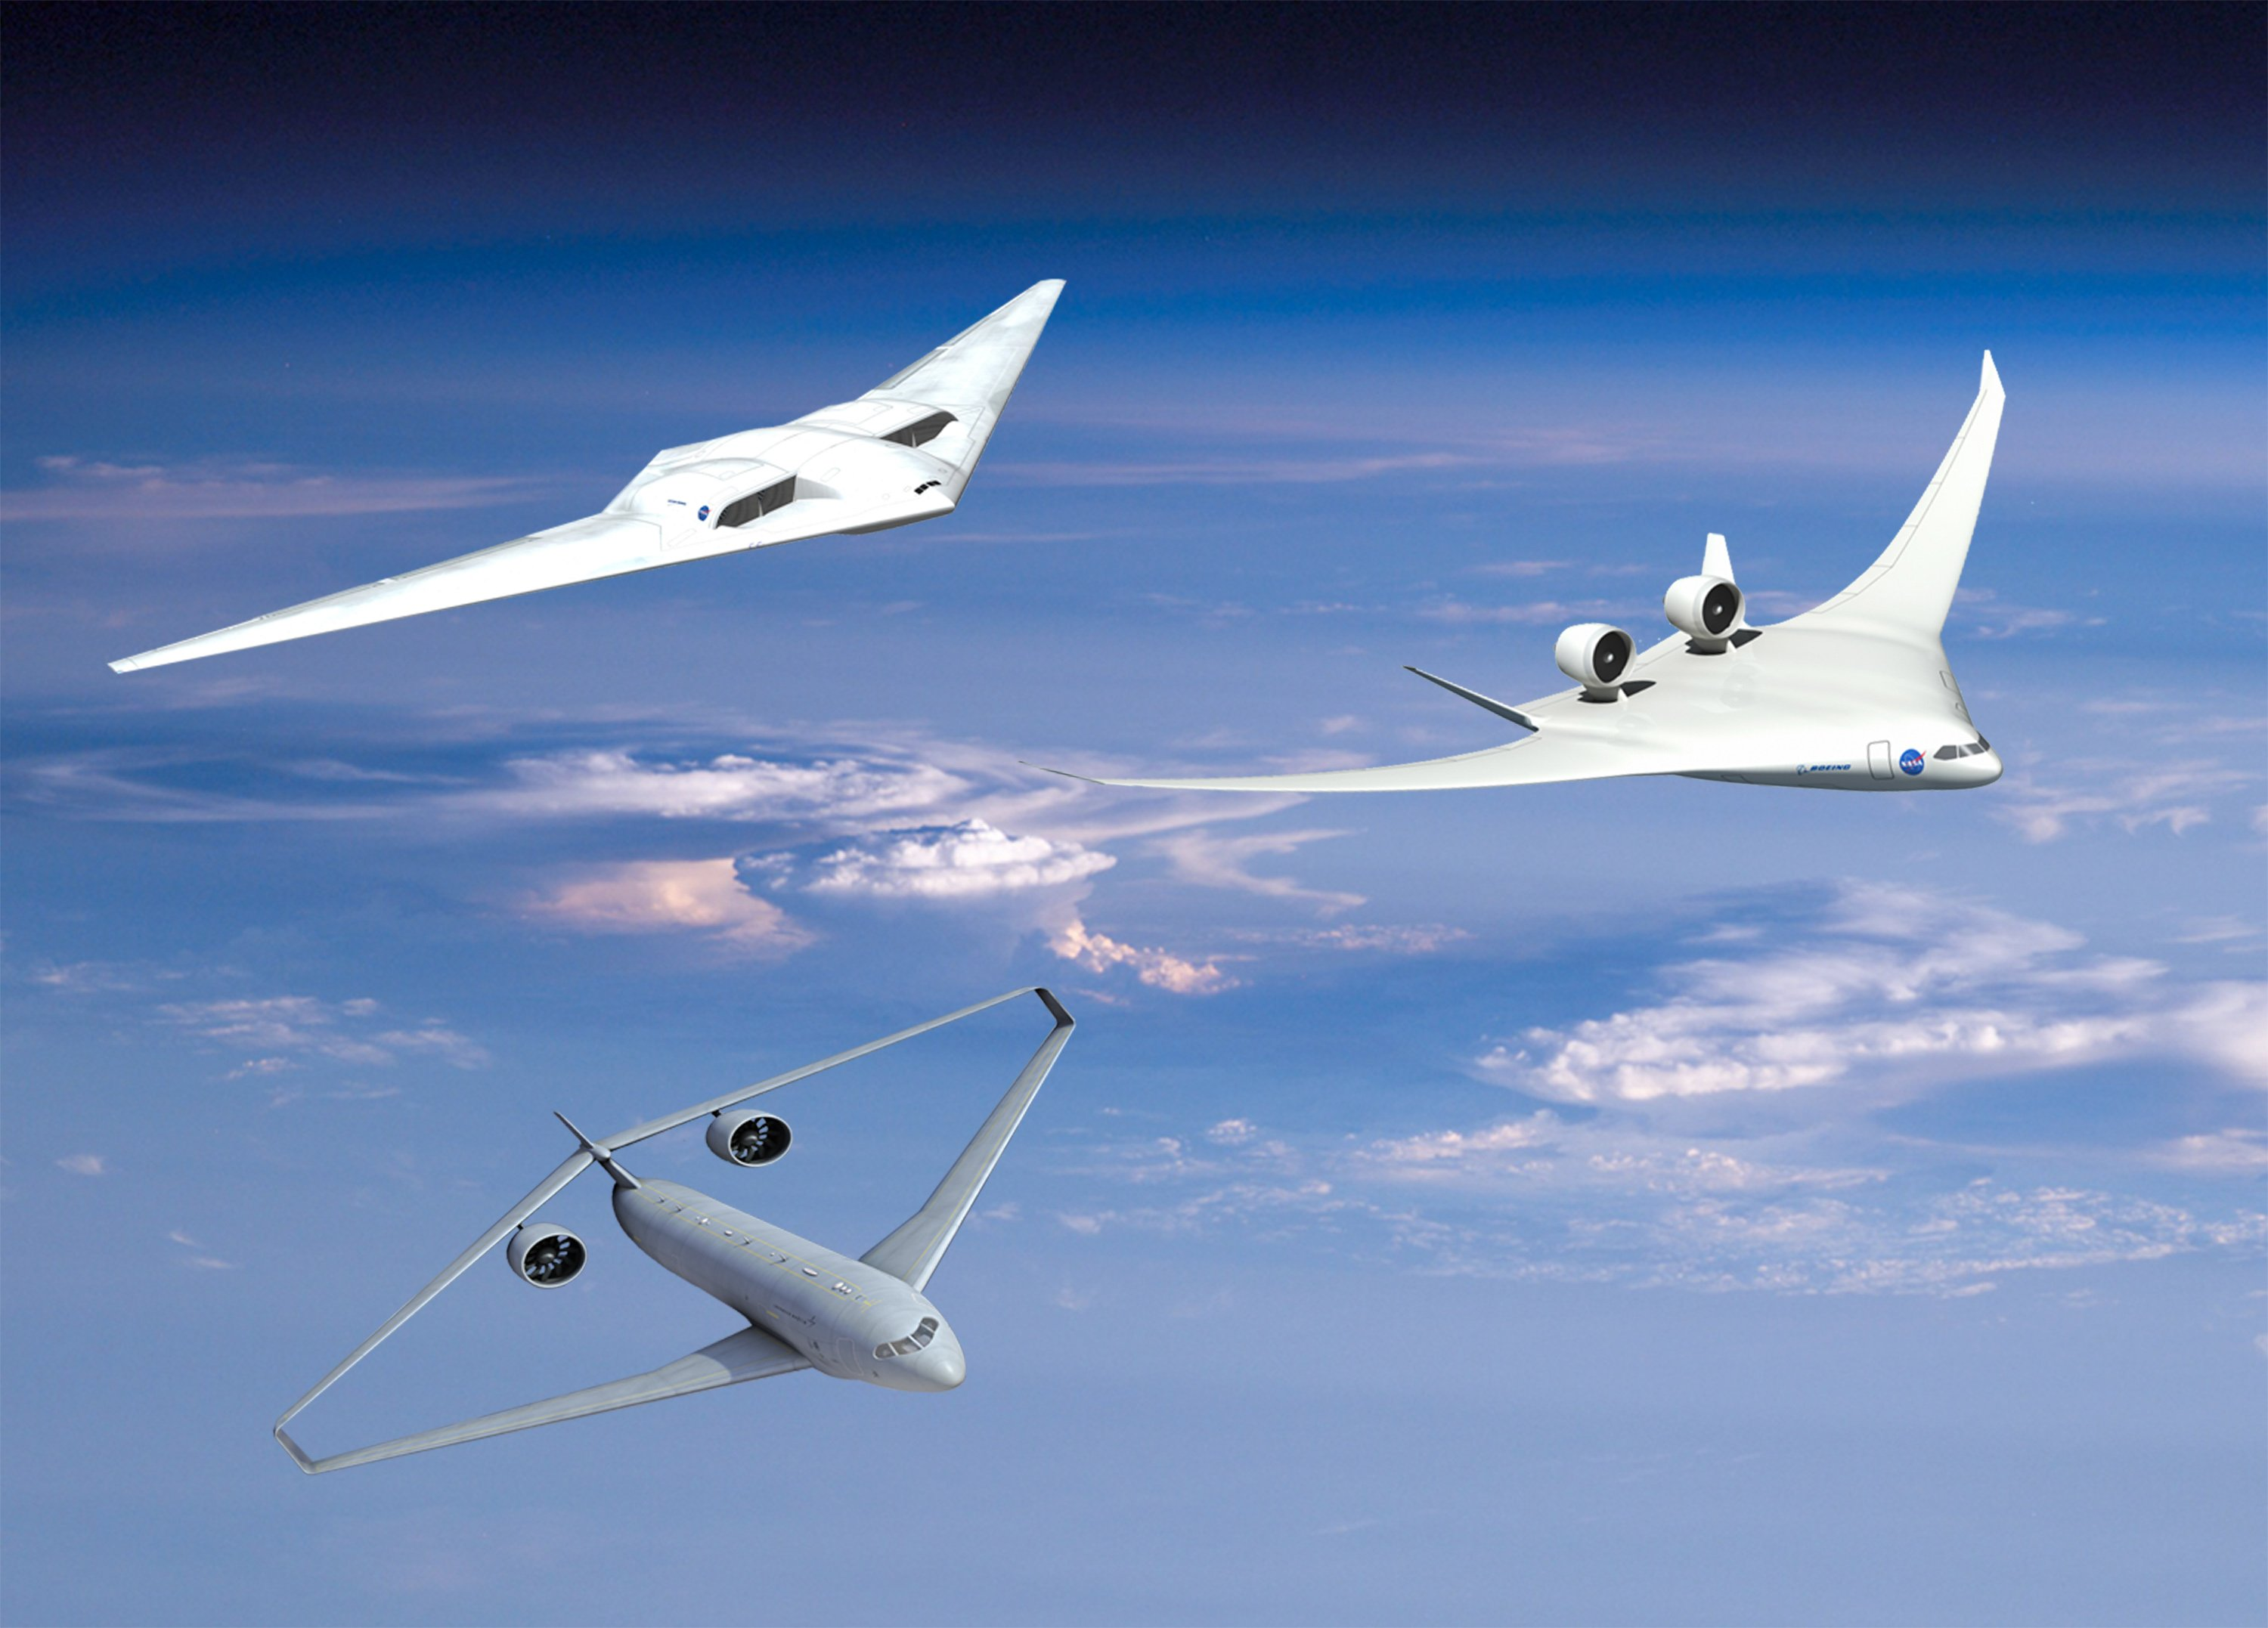 nasa x 48 drone aircraft - photo #1